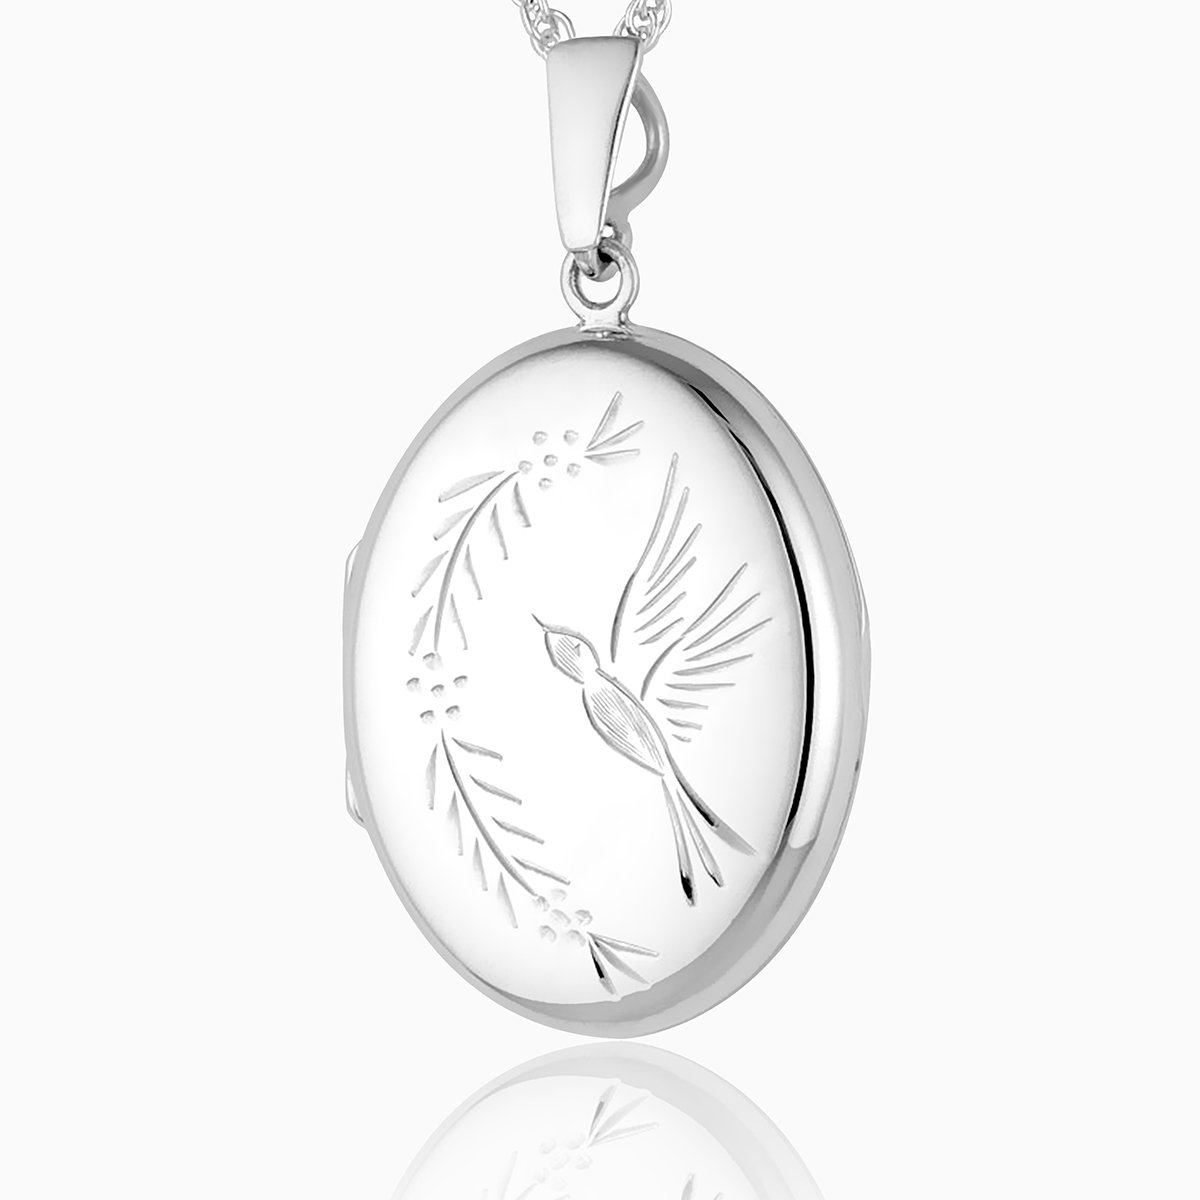 Product title: Hand Engraved Oval Bird Locket, product type: Locket